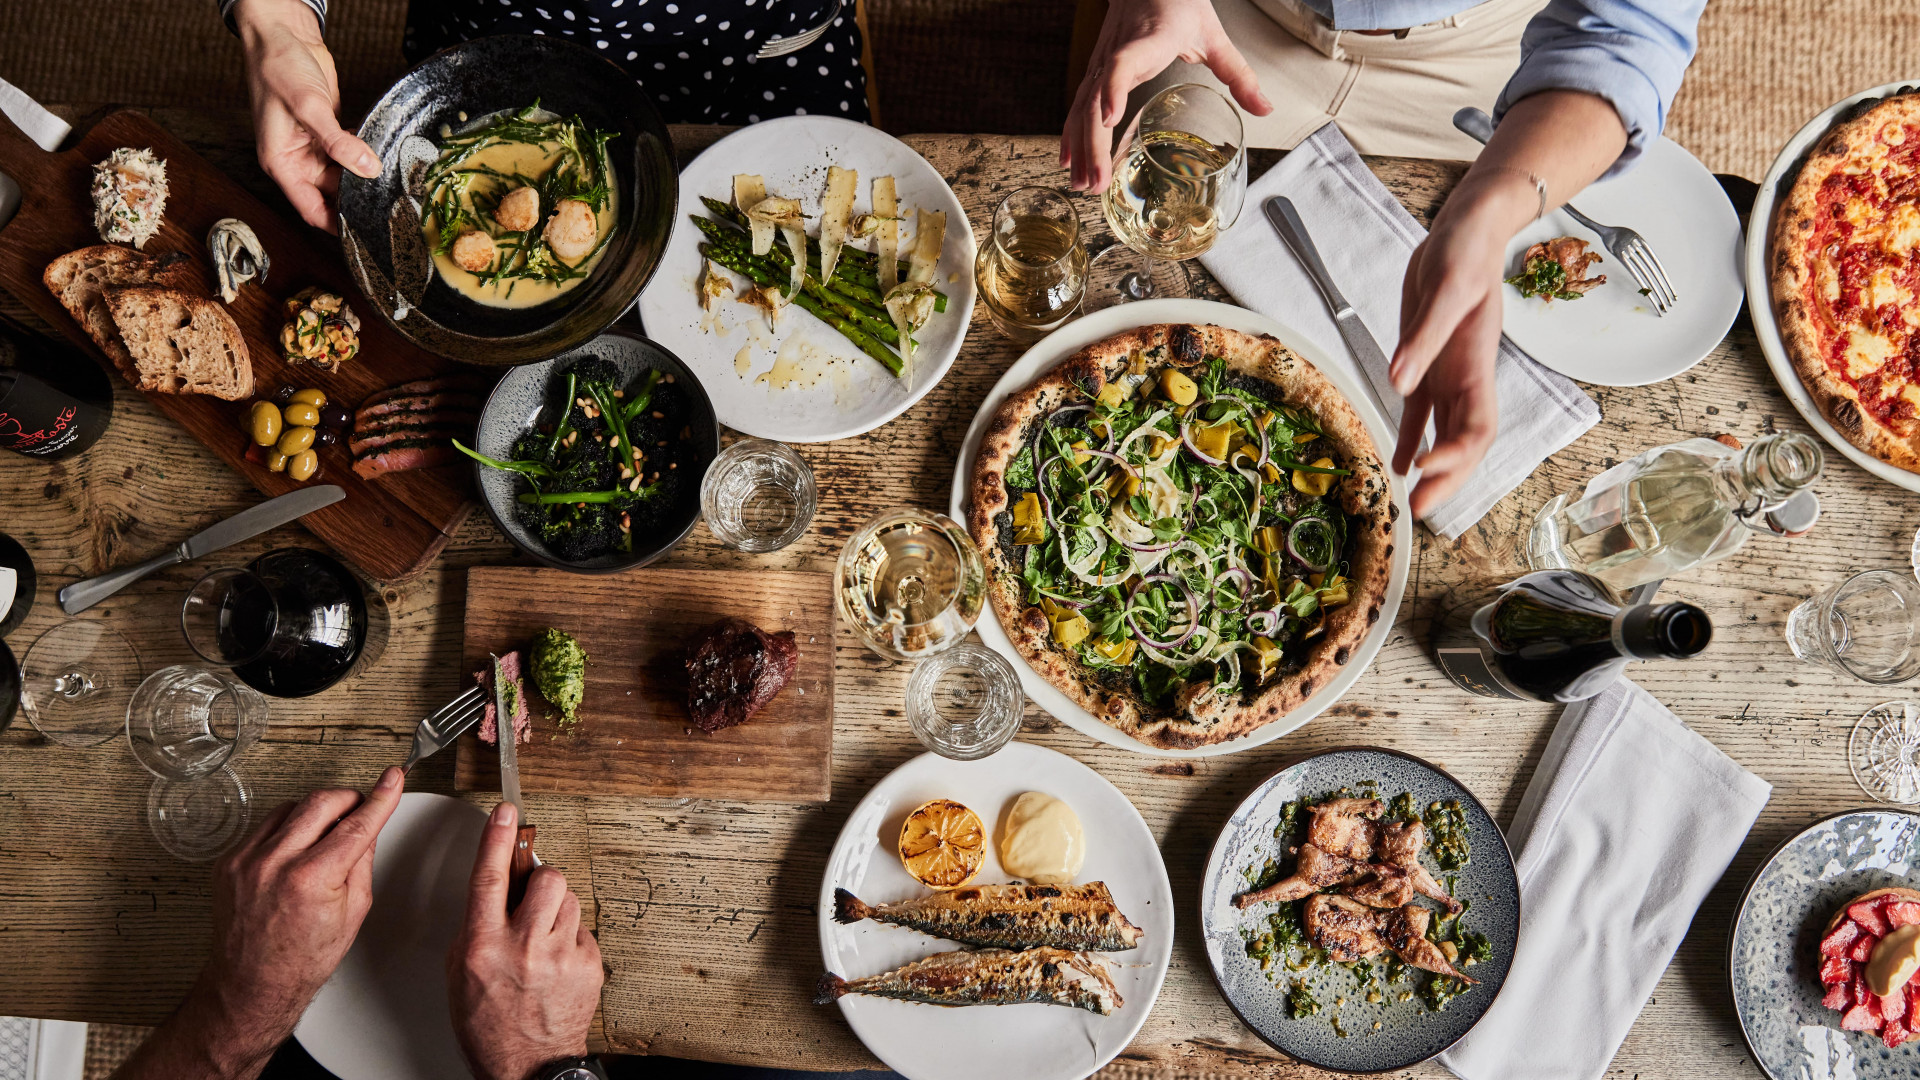 This is a photo of people enjoying a food spread of pizza, asparagus, fish, bread, olives and wine at the Wilding restaurant in Oxford.